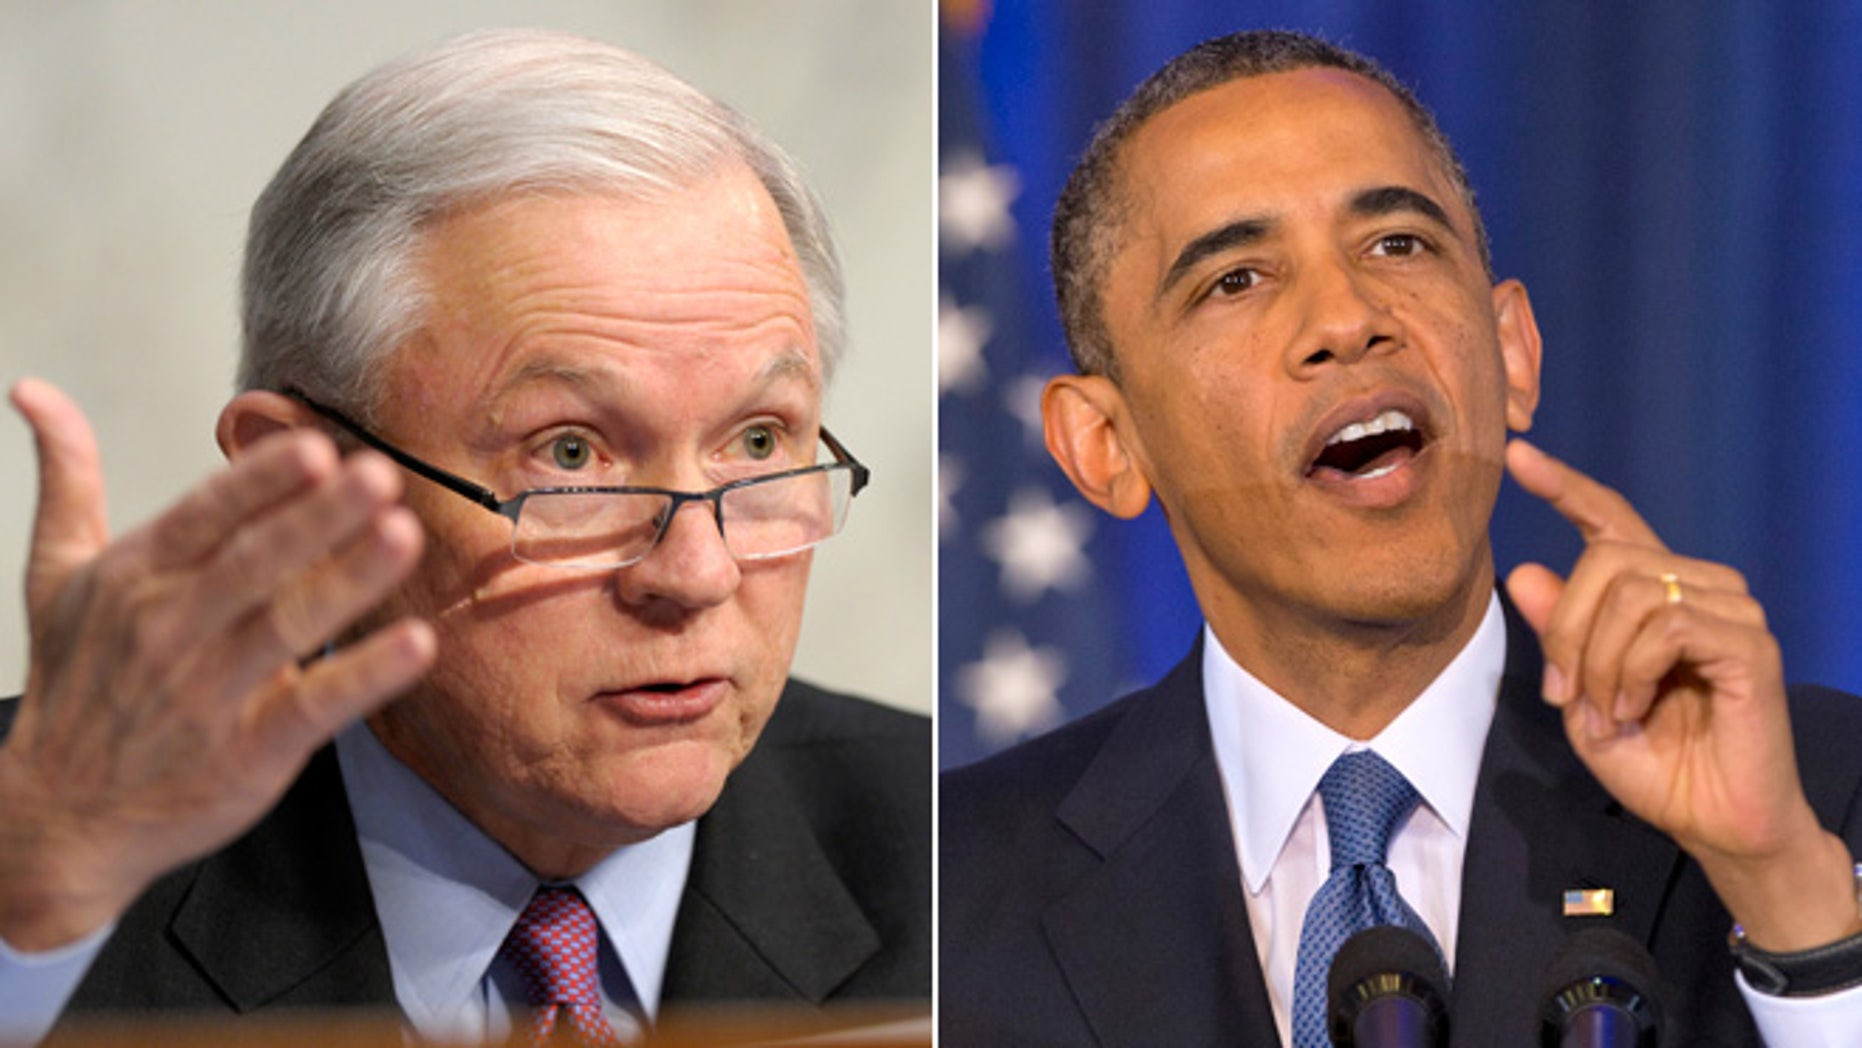 Sen. Jeff Sessions, R-Ala., left and President Obama.